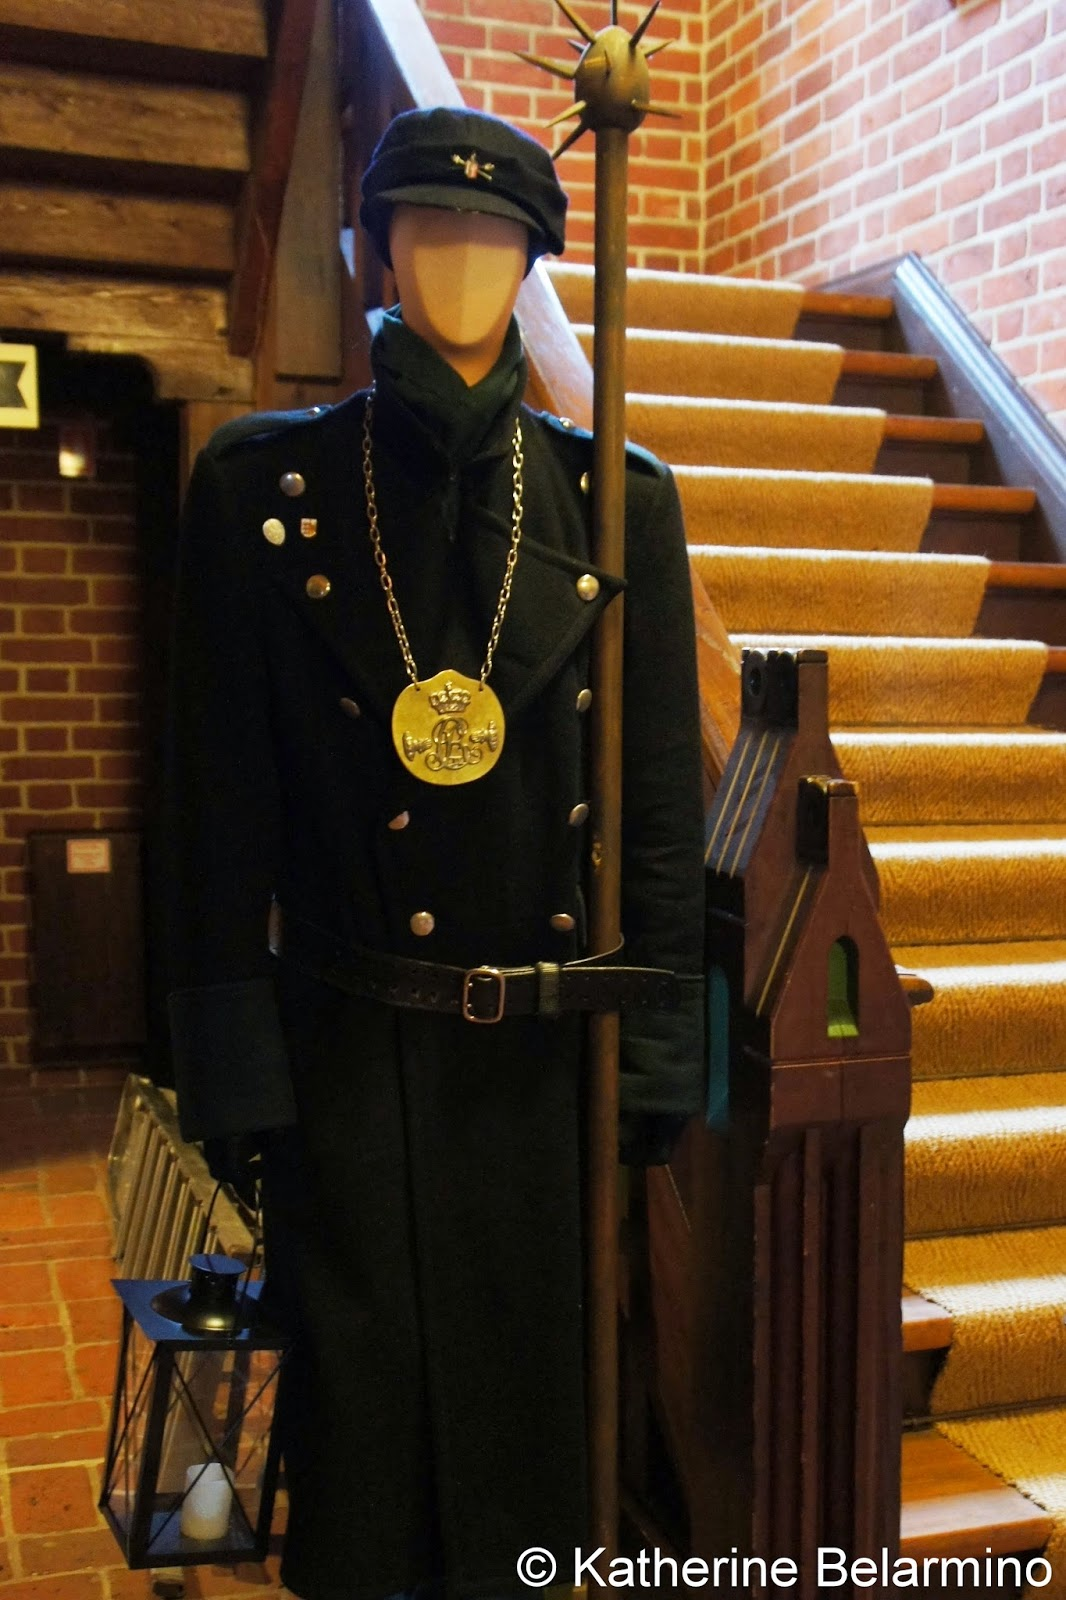 Night Watchman Uniform Den Gamle Radhus Denmark